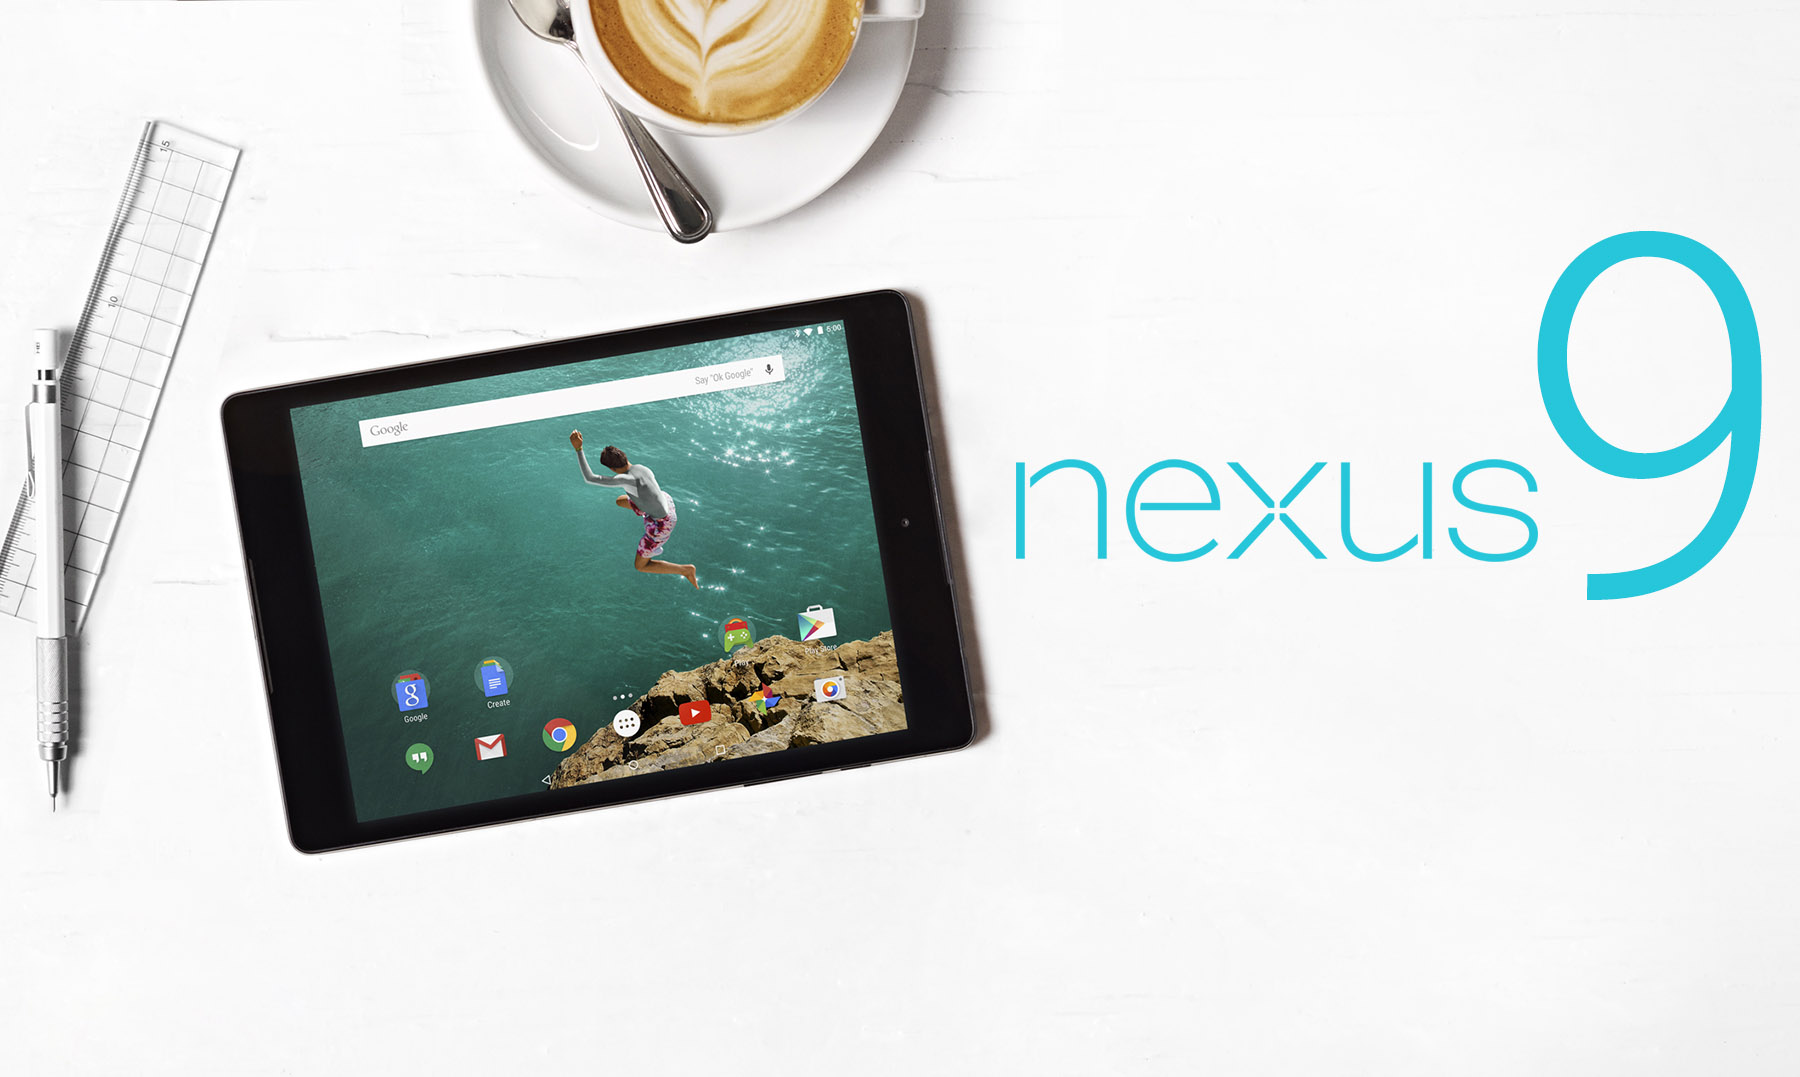 HTC Nexus 9 is now Available for Pre-order on Amazon in ...